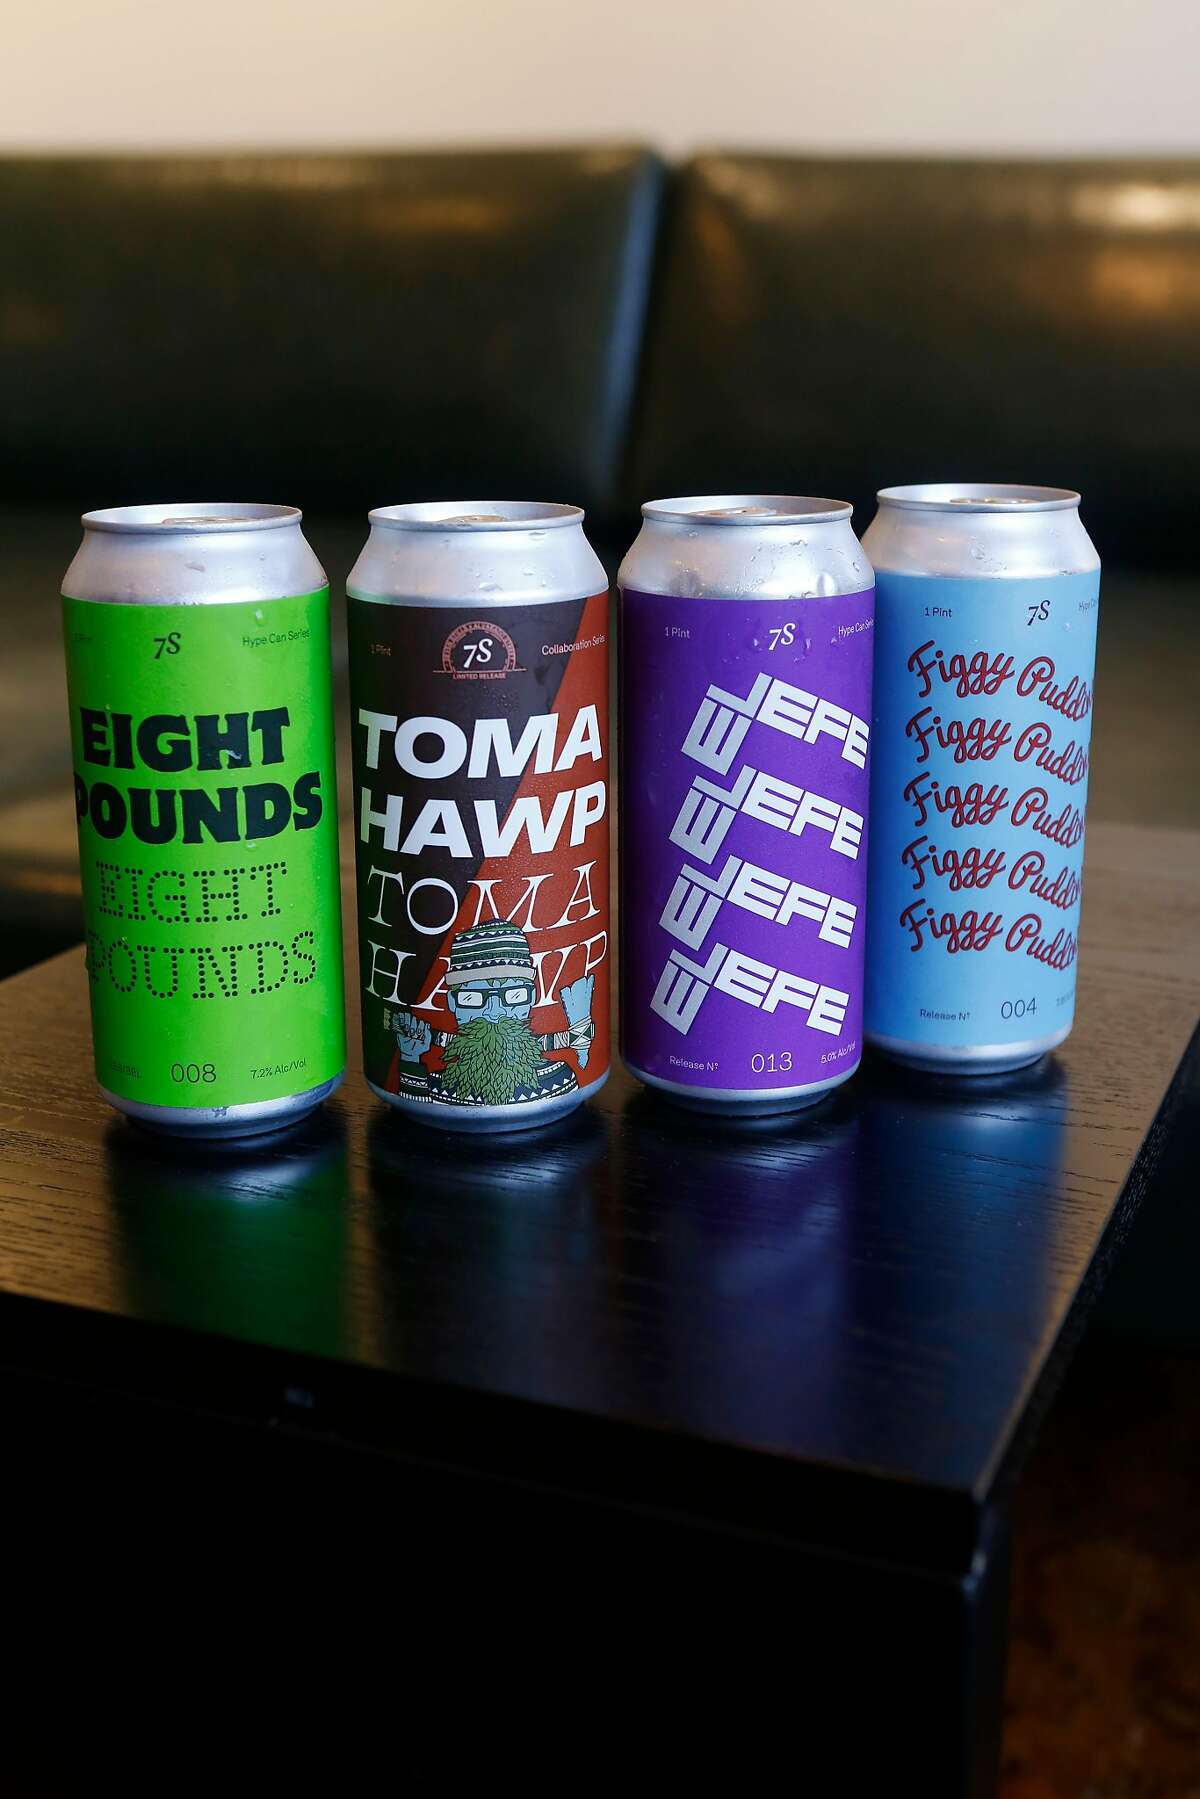 Beer cans Eight Pounds, Tomahawp, El Jefe, and Figgy Puddding at the Seven Stills Nob Hill bar located inside the Stanford Court Hotel on Thursday, June 21, 2018 in San Francisco, Calif.